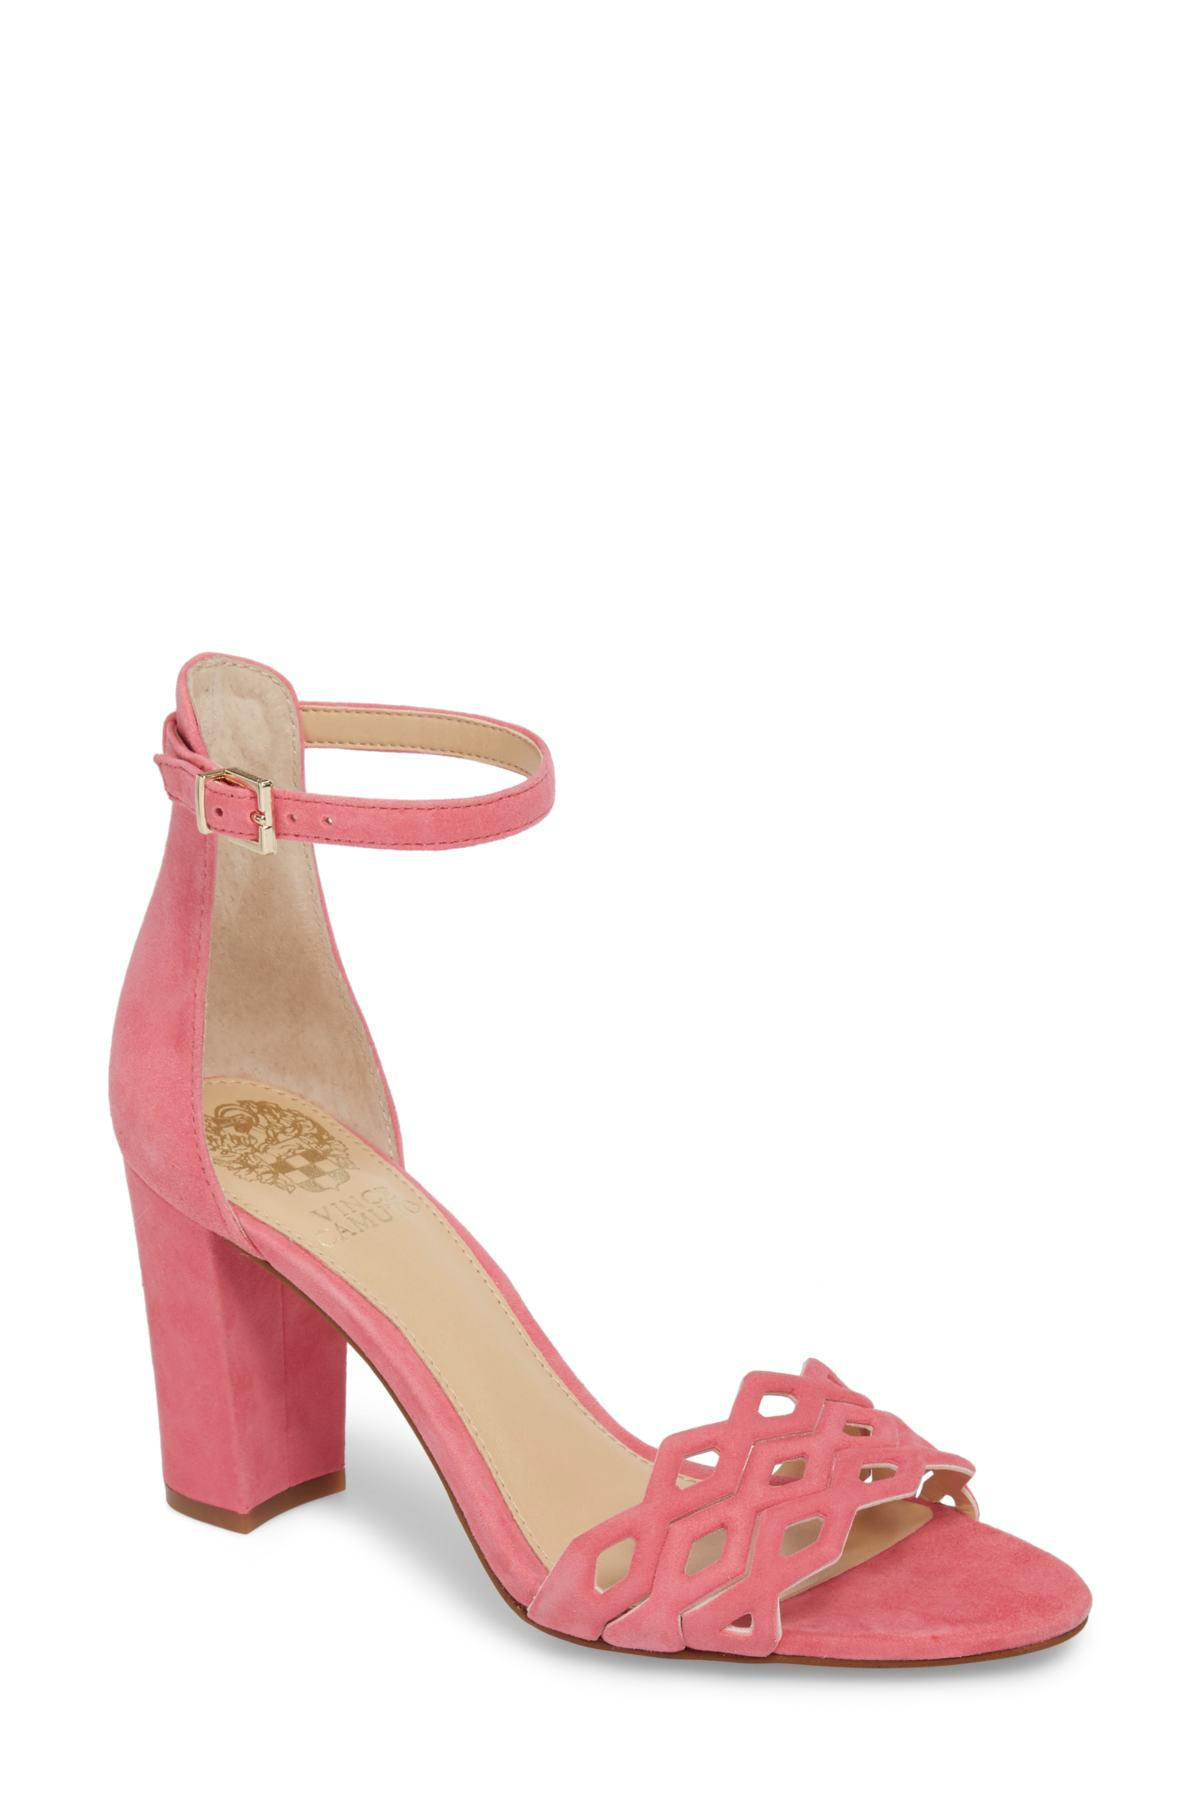 db8a261471e Lyst - Vince Camuto Caveena Block Heel Sandal (women) in Pink - Save 27%